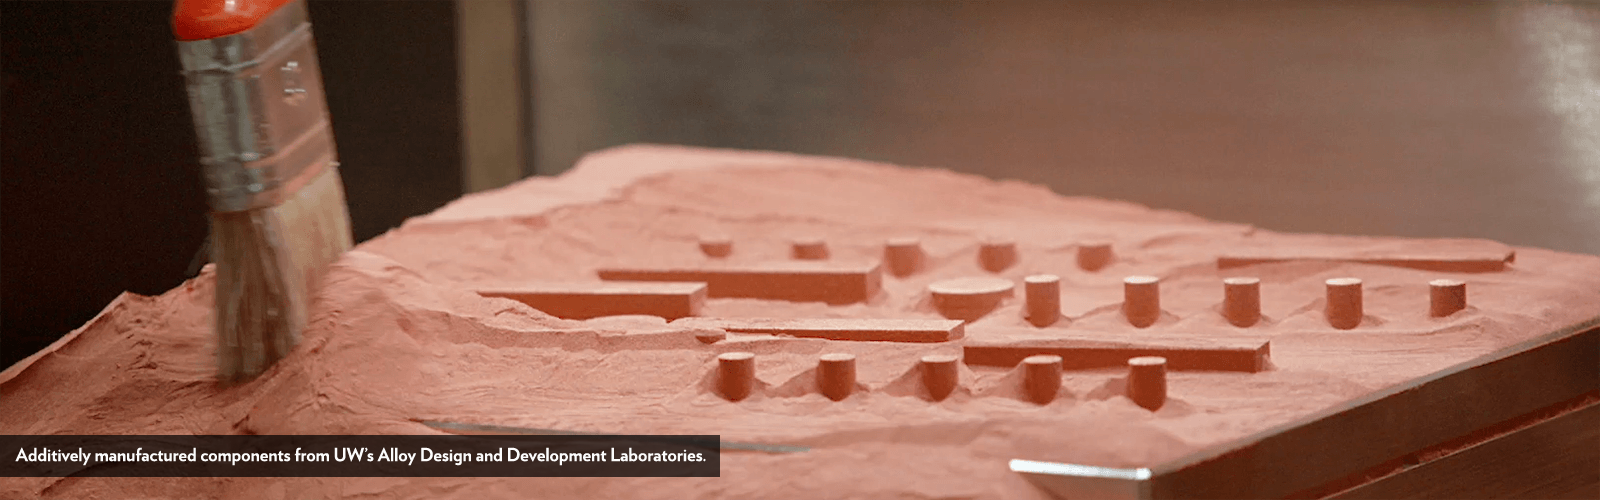 Additively manufactured components from UW's Alloy Design and Development Laboratories